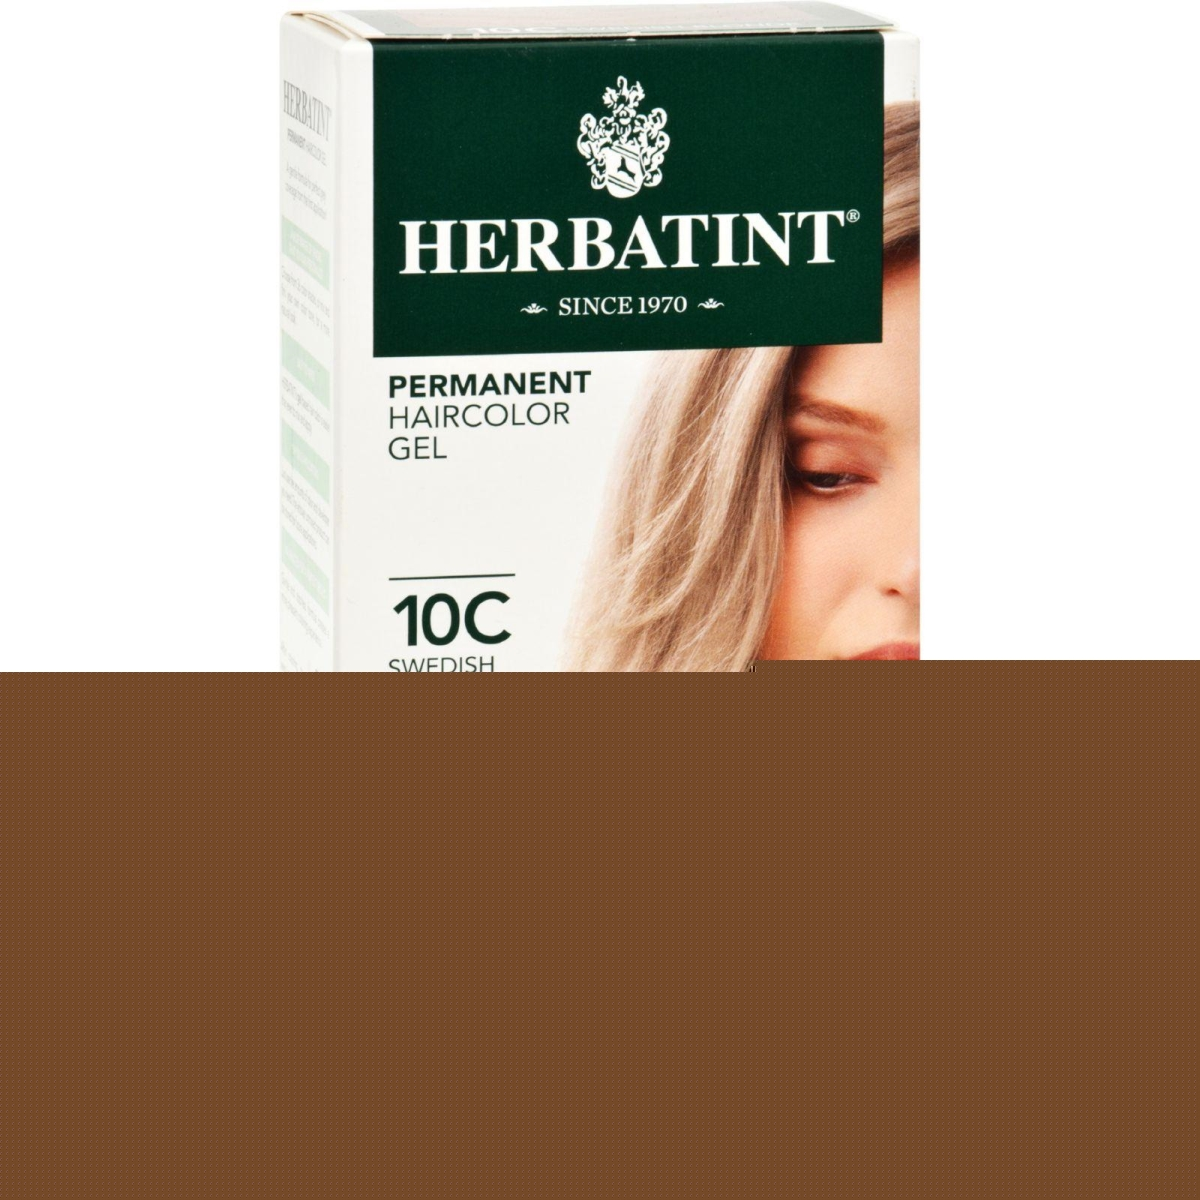 Herbatint HG0226993 Haircolor Kit Ash - Swedish Blonde 10c